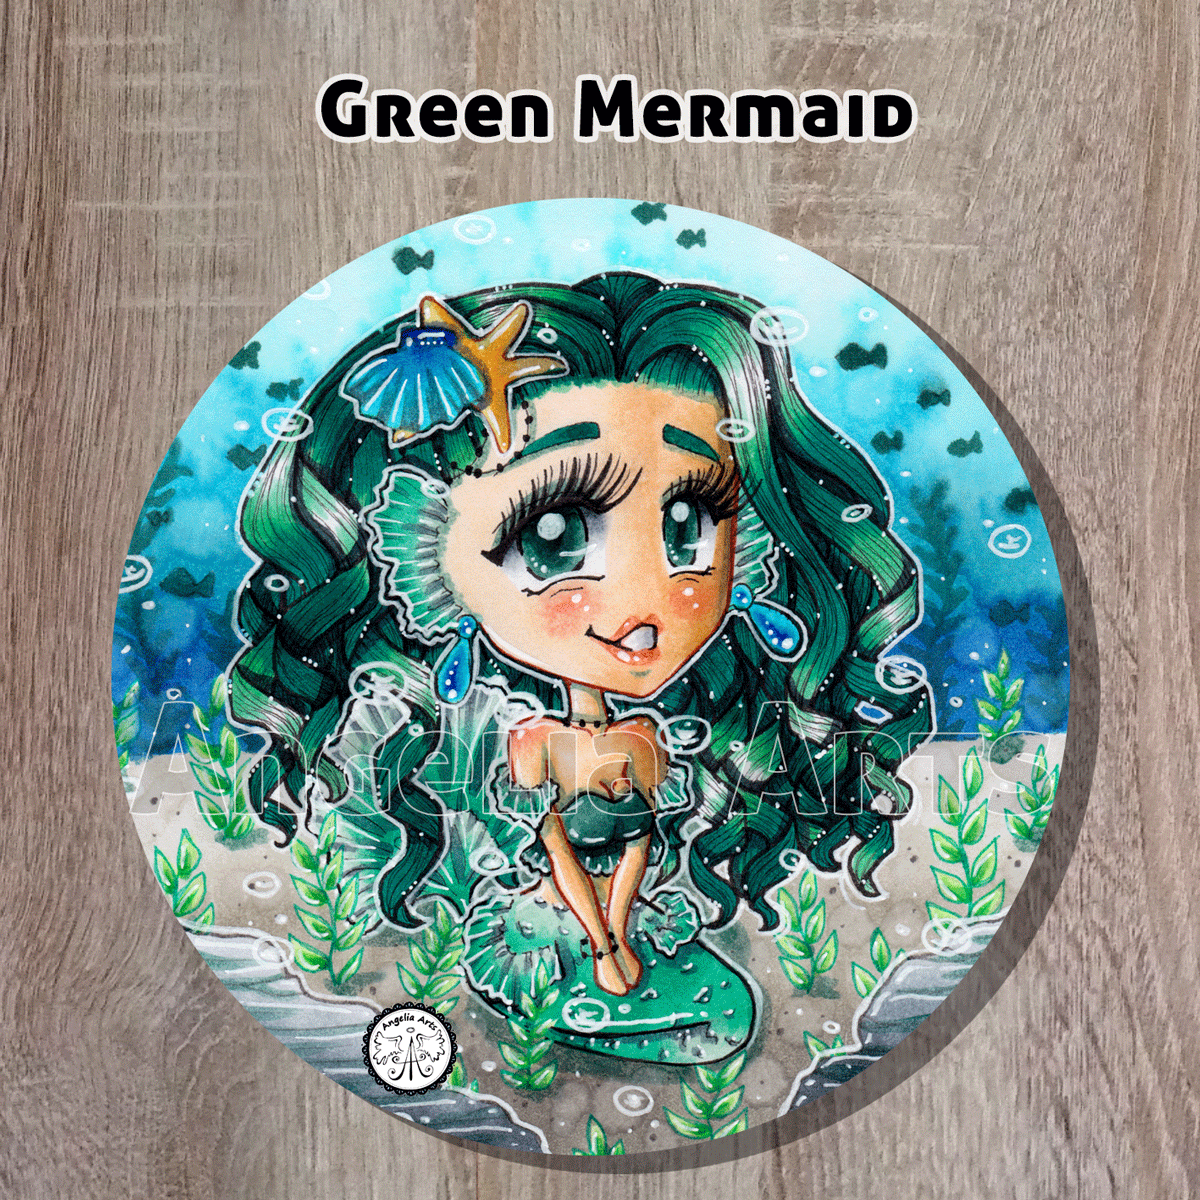 Green-Mermaid-Original